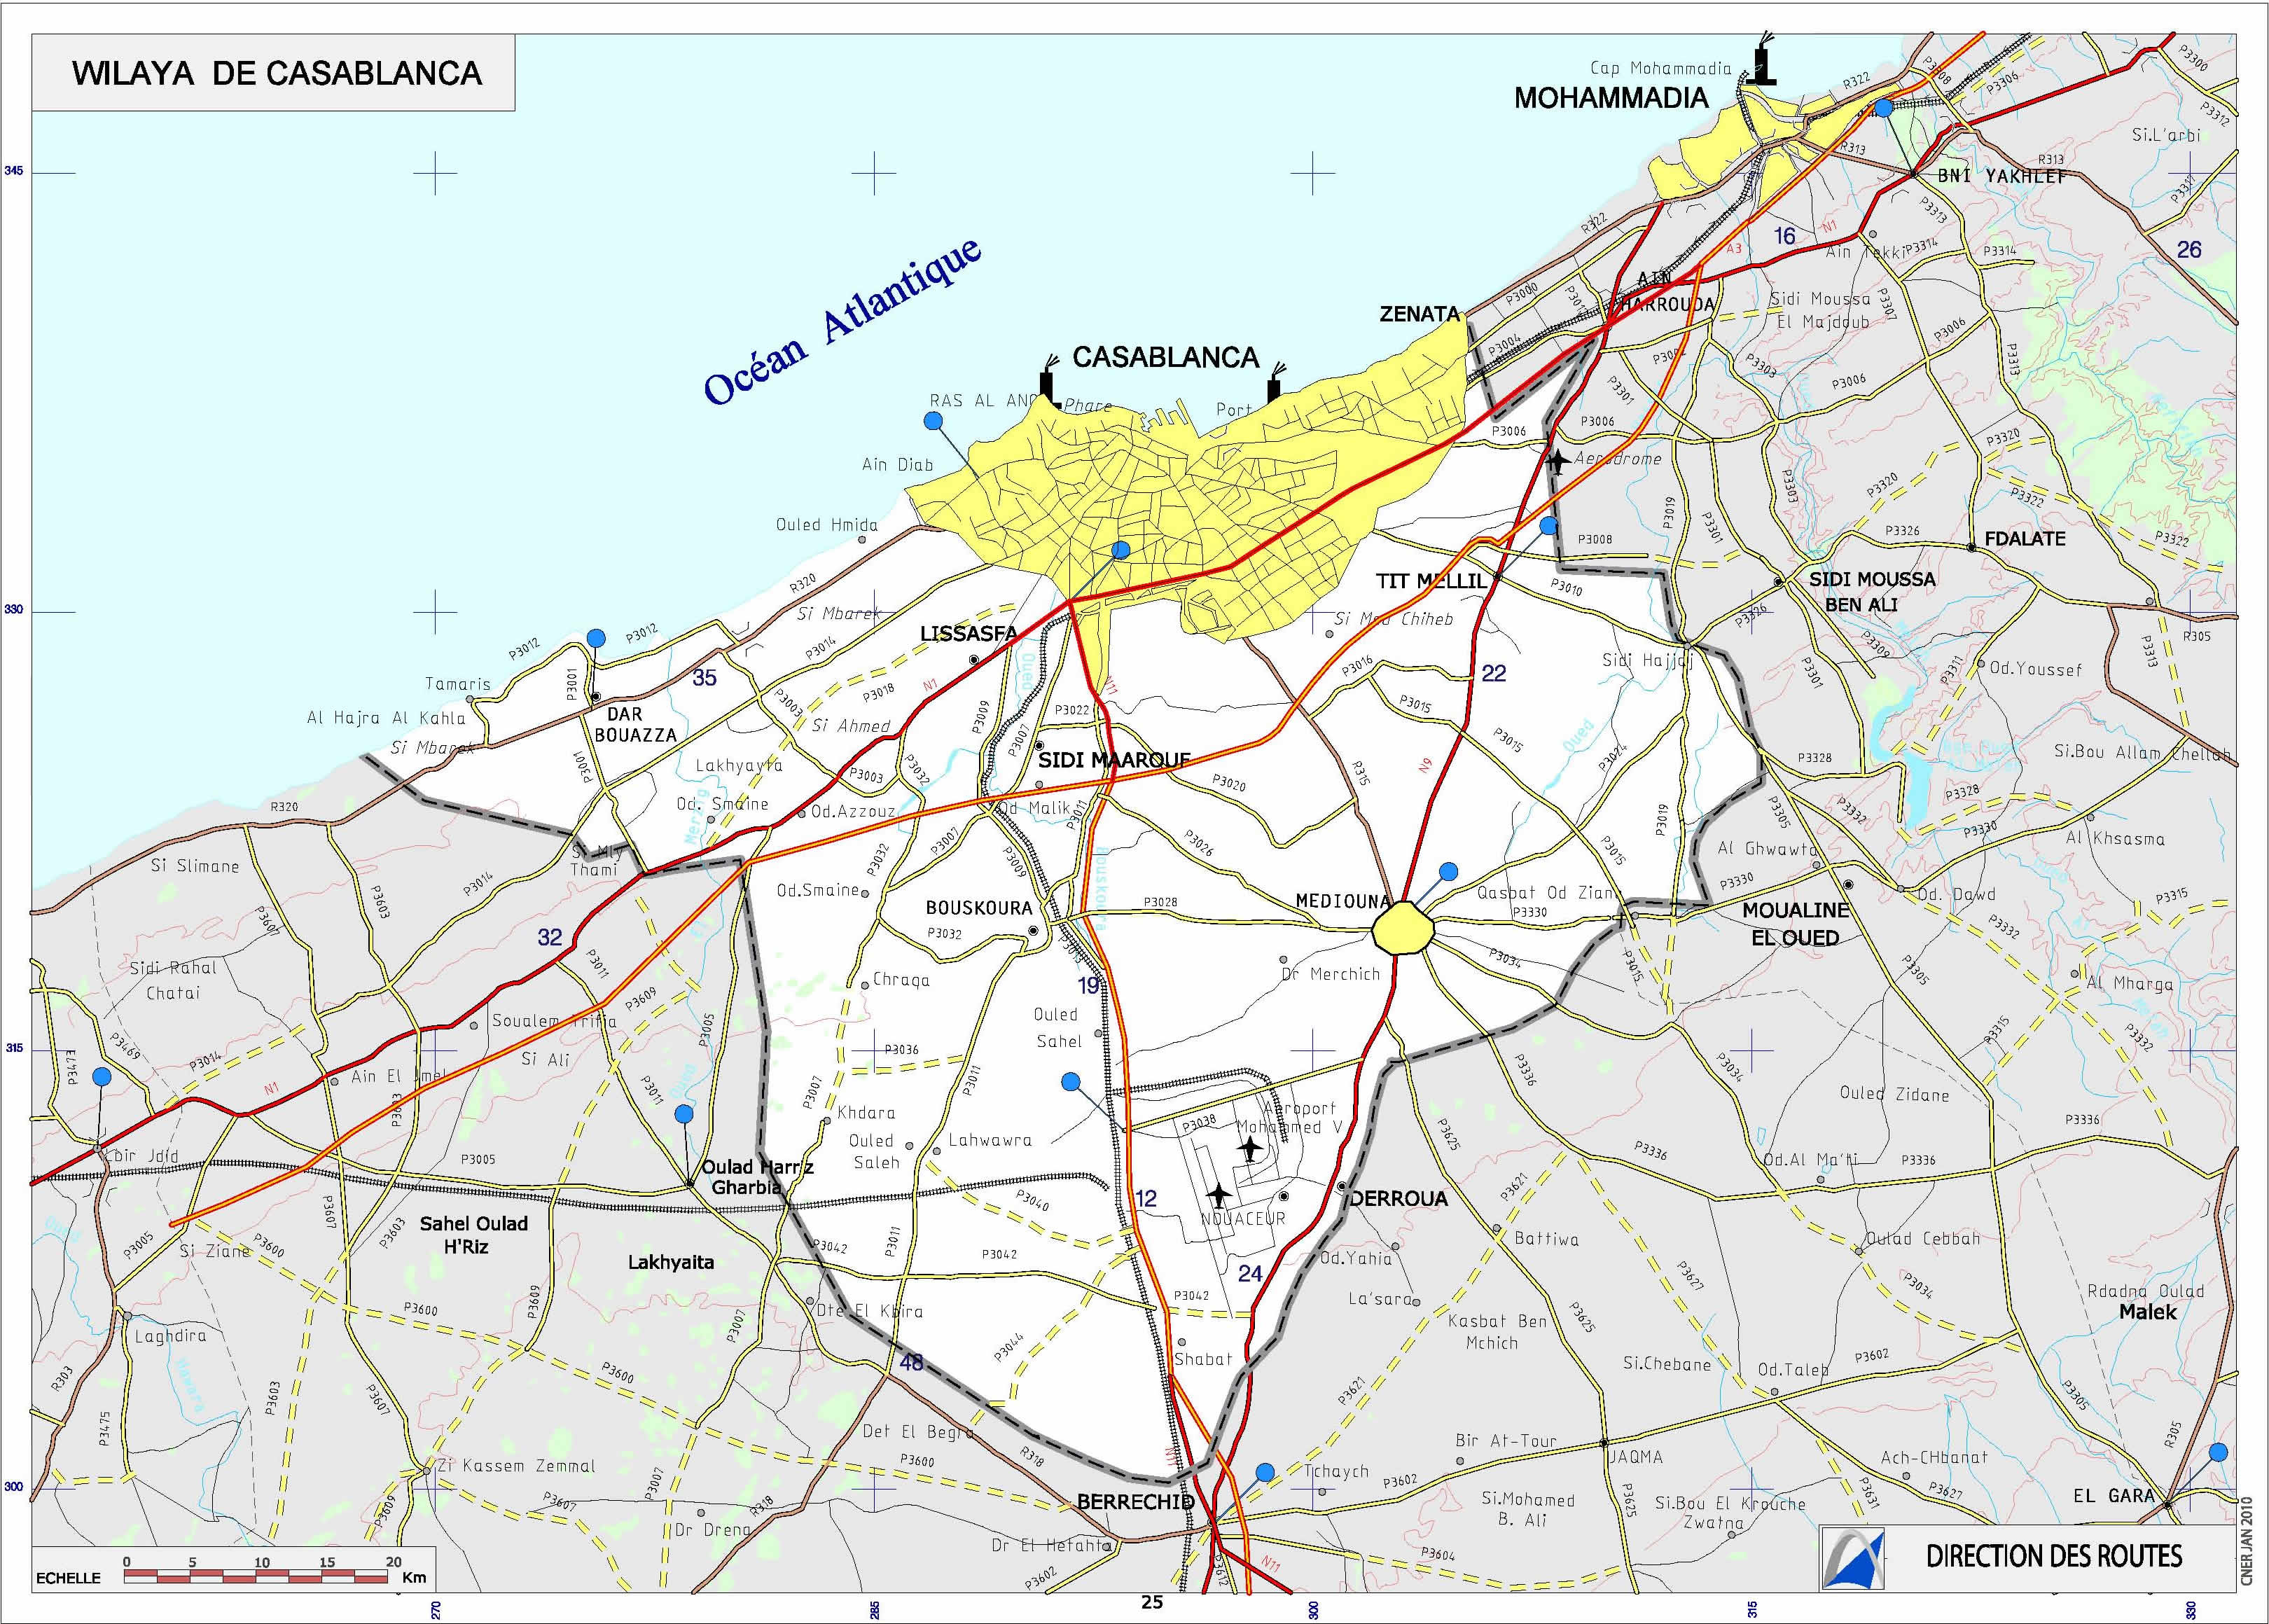 Carte Casablanca Carte routire casablanca